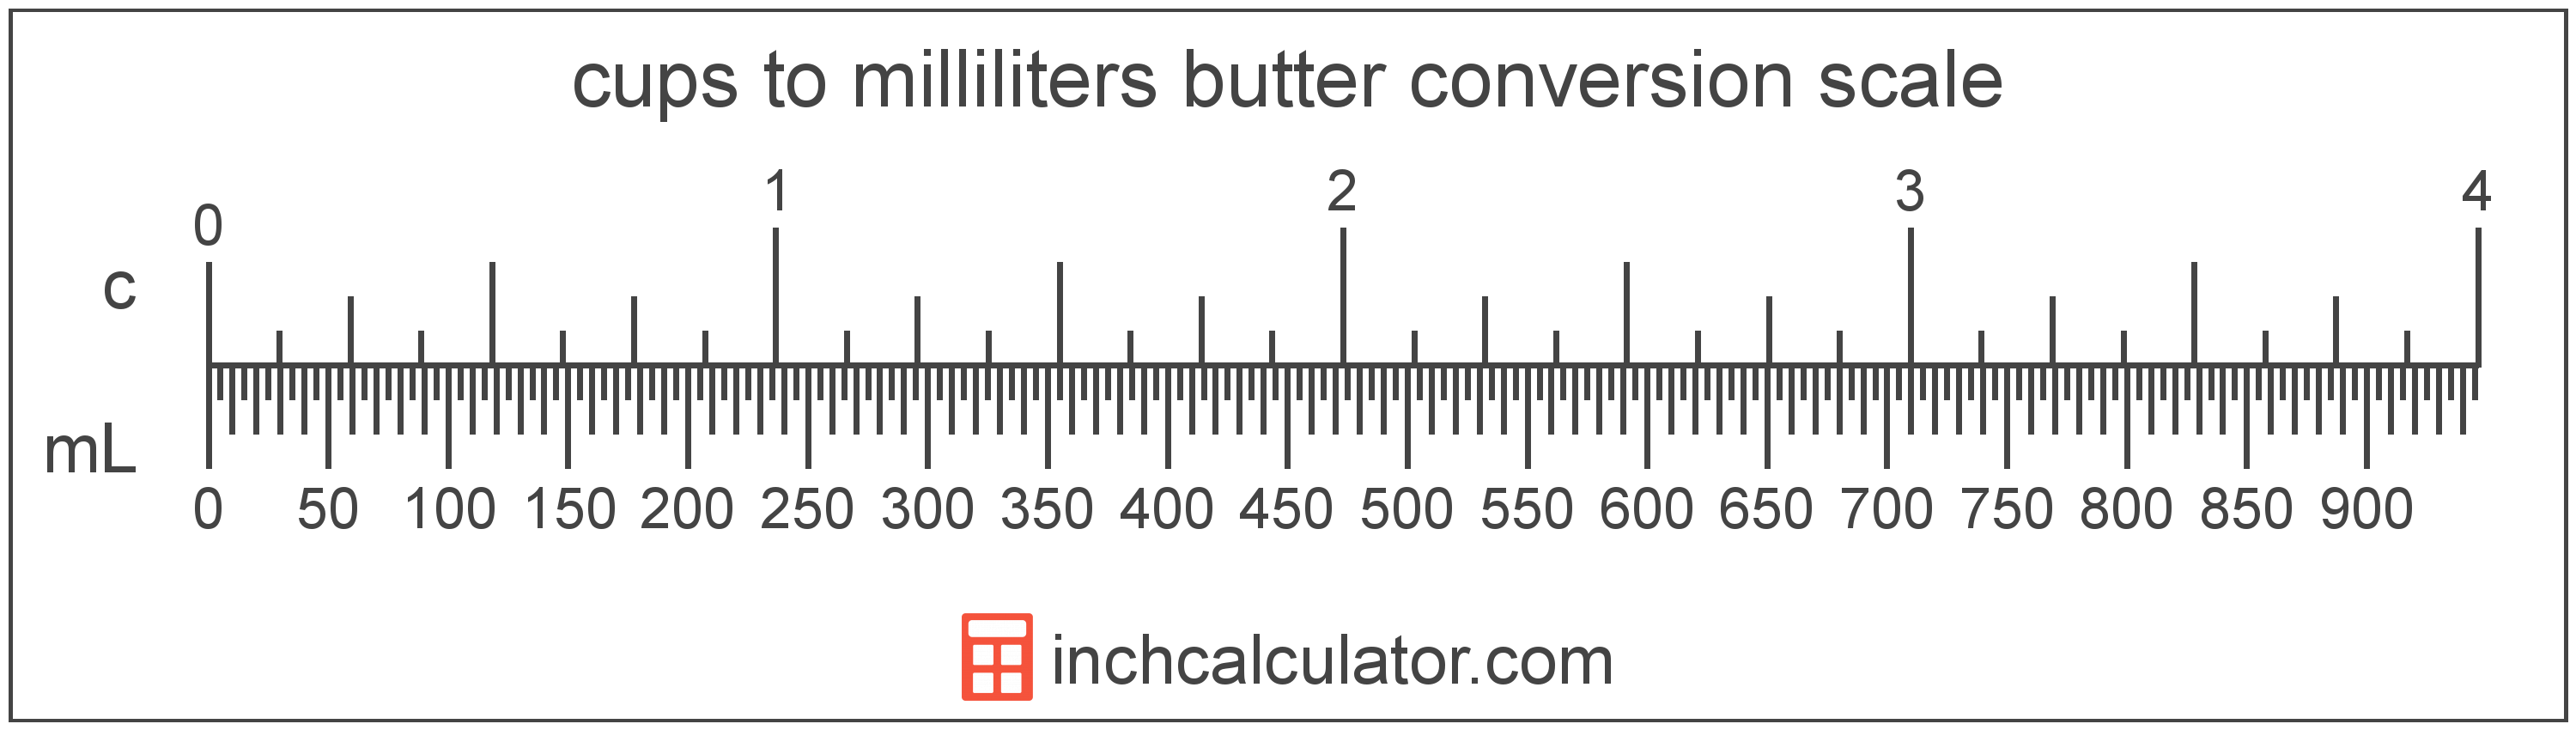 Milliliters Of Butter To Cups Conversion Ml To C